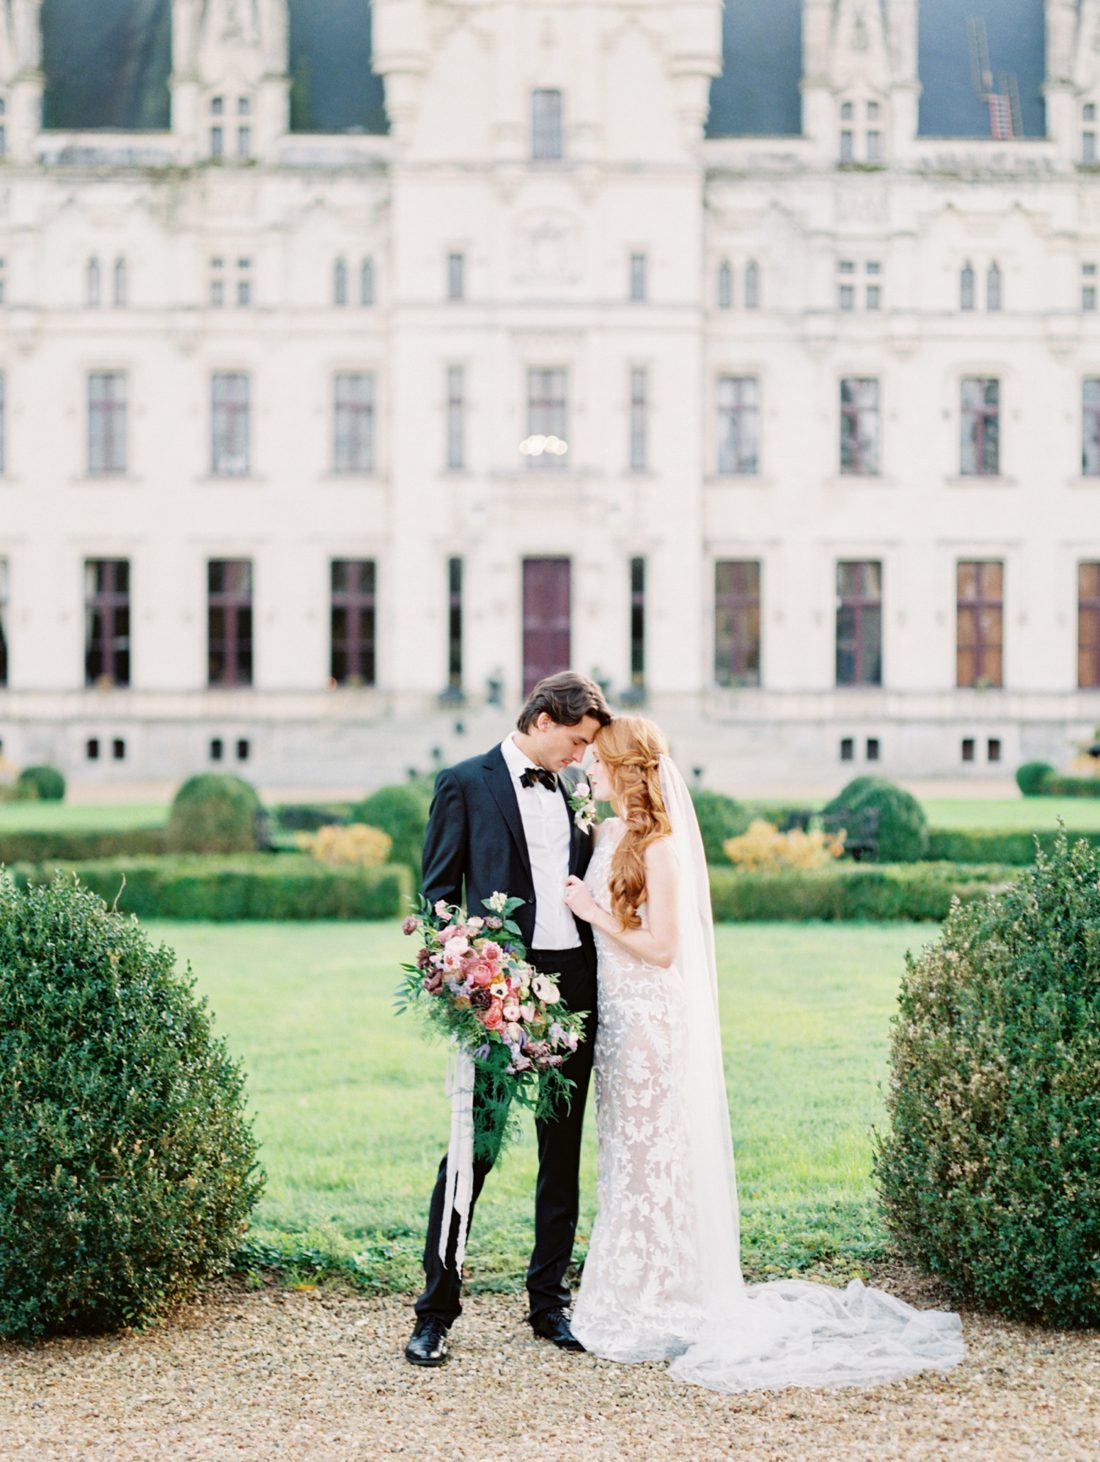 Valencienne Bride and Groom in front of French Chateau